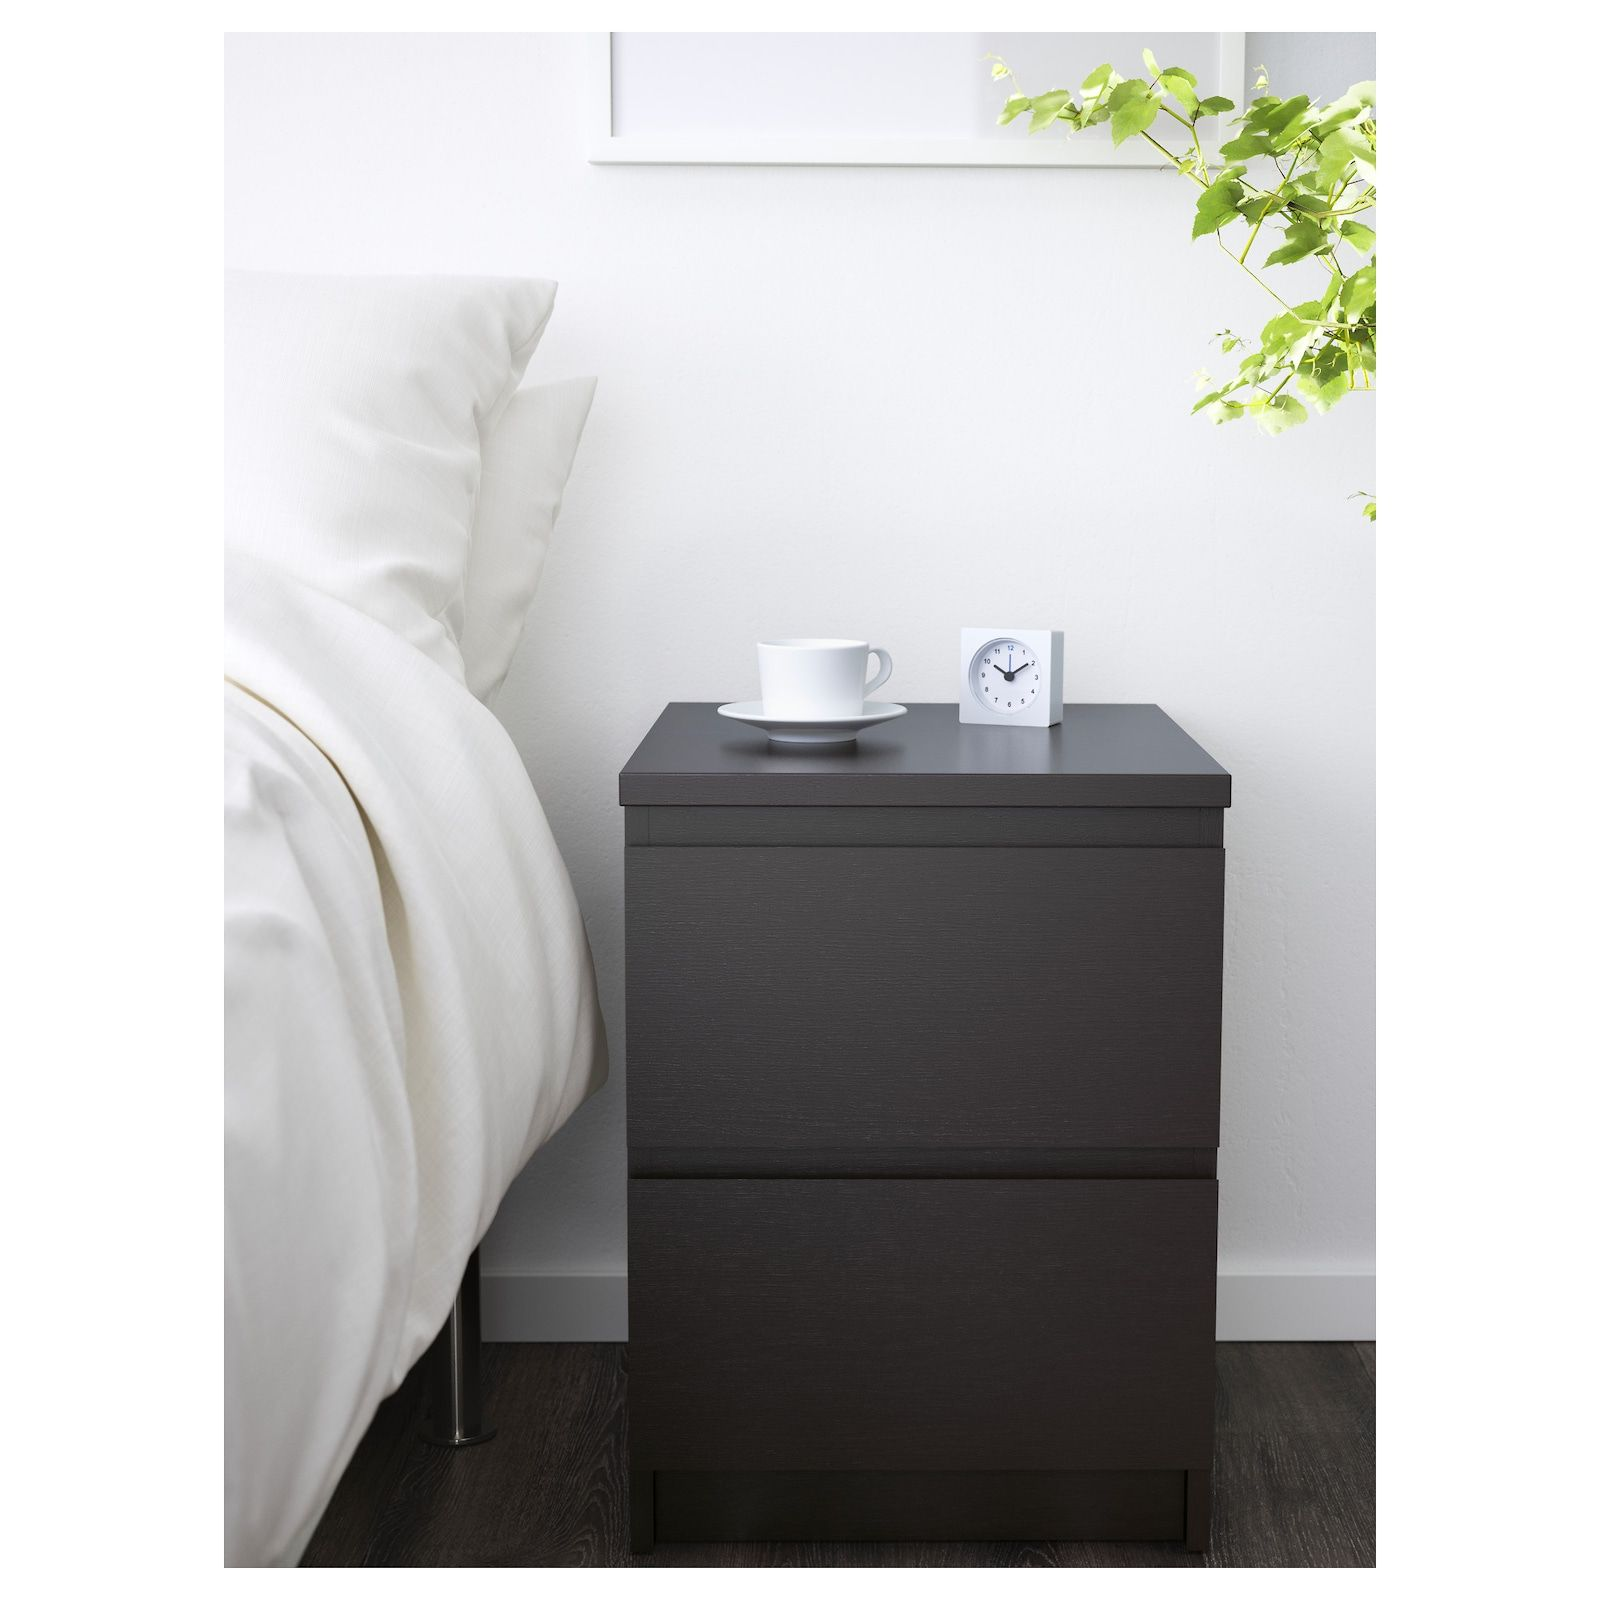 Malm 2 Drawer Chest Black Brown 15 3 4x21 5 8 Ikea In 2020